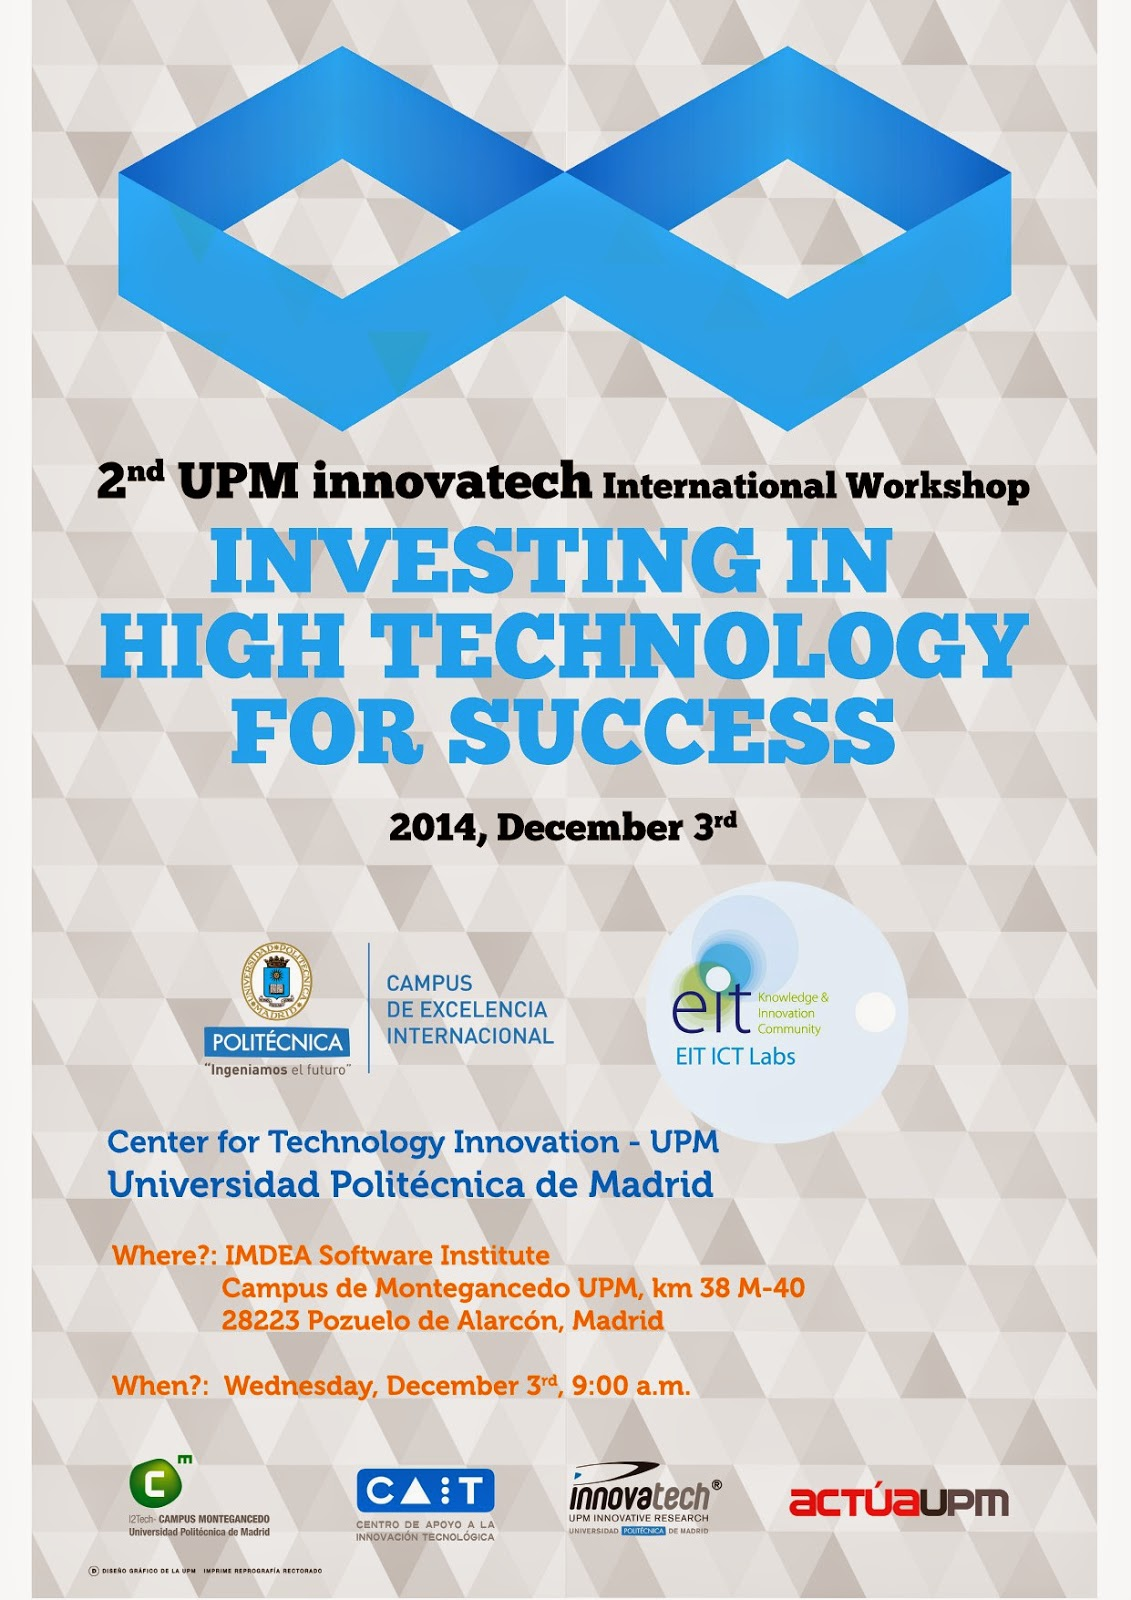 2nd UPM innovatech International Workshop